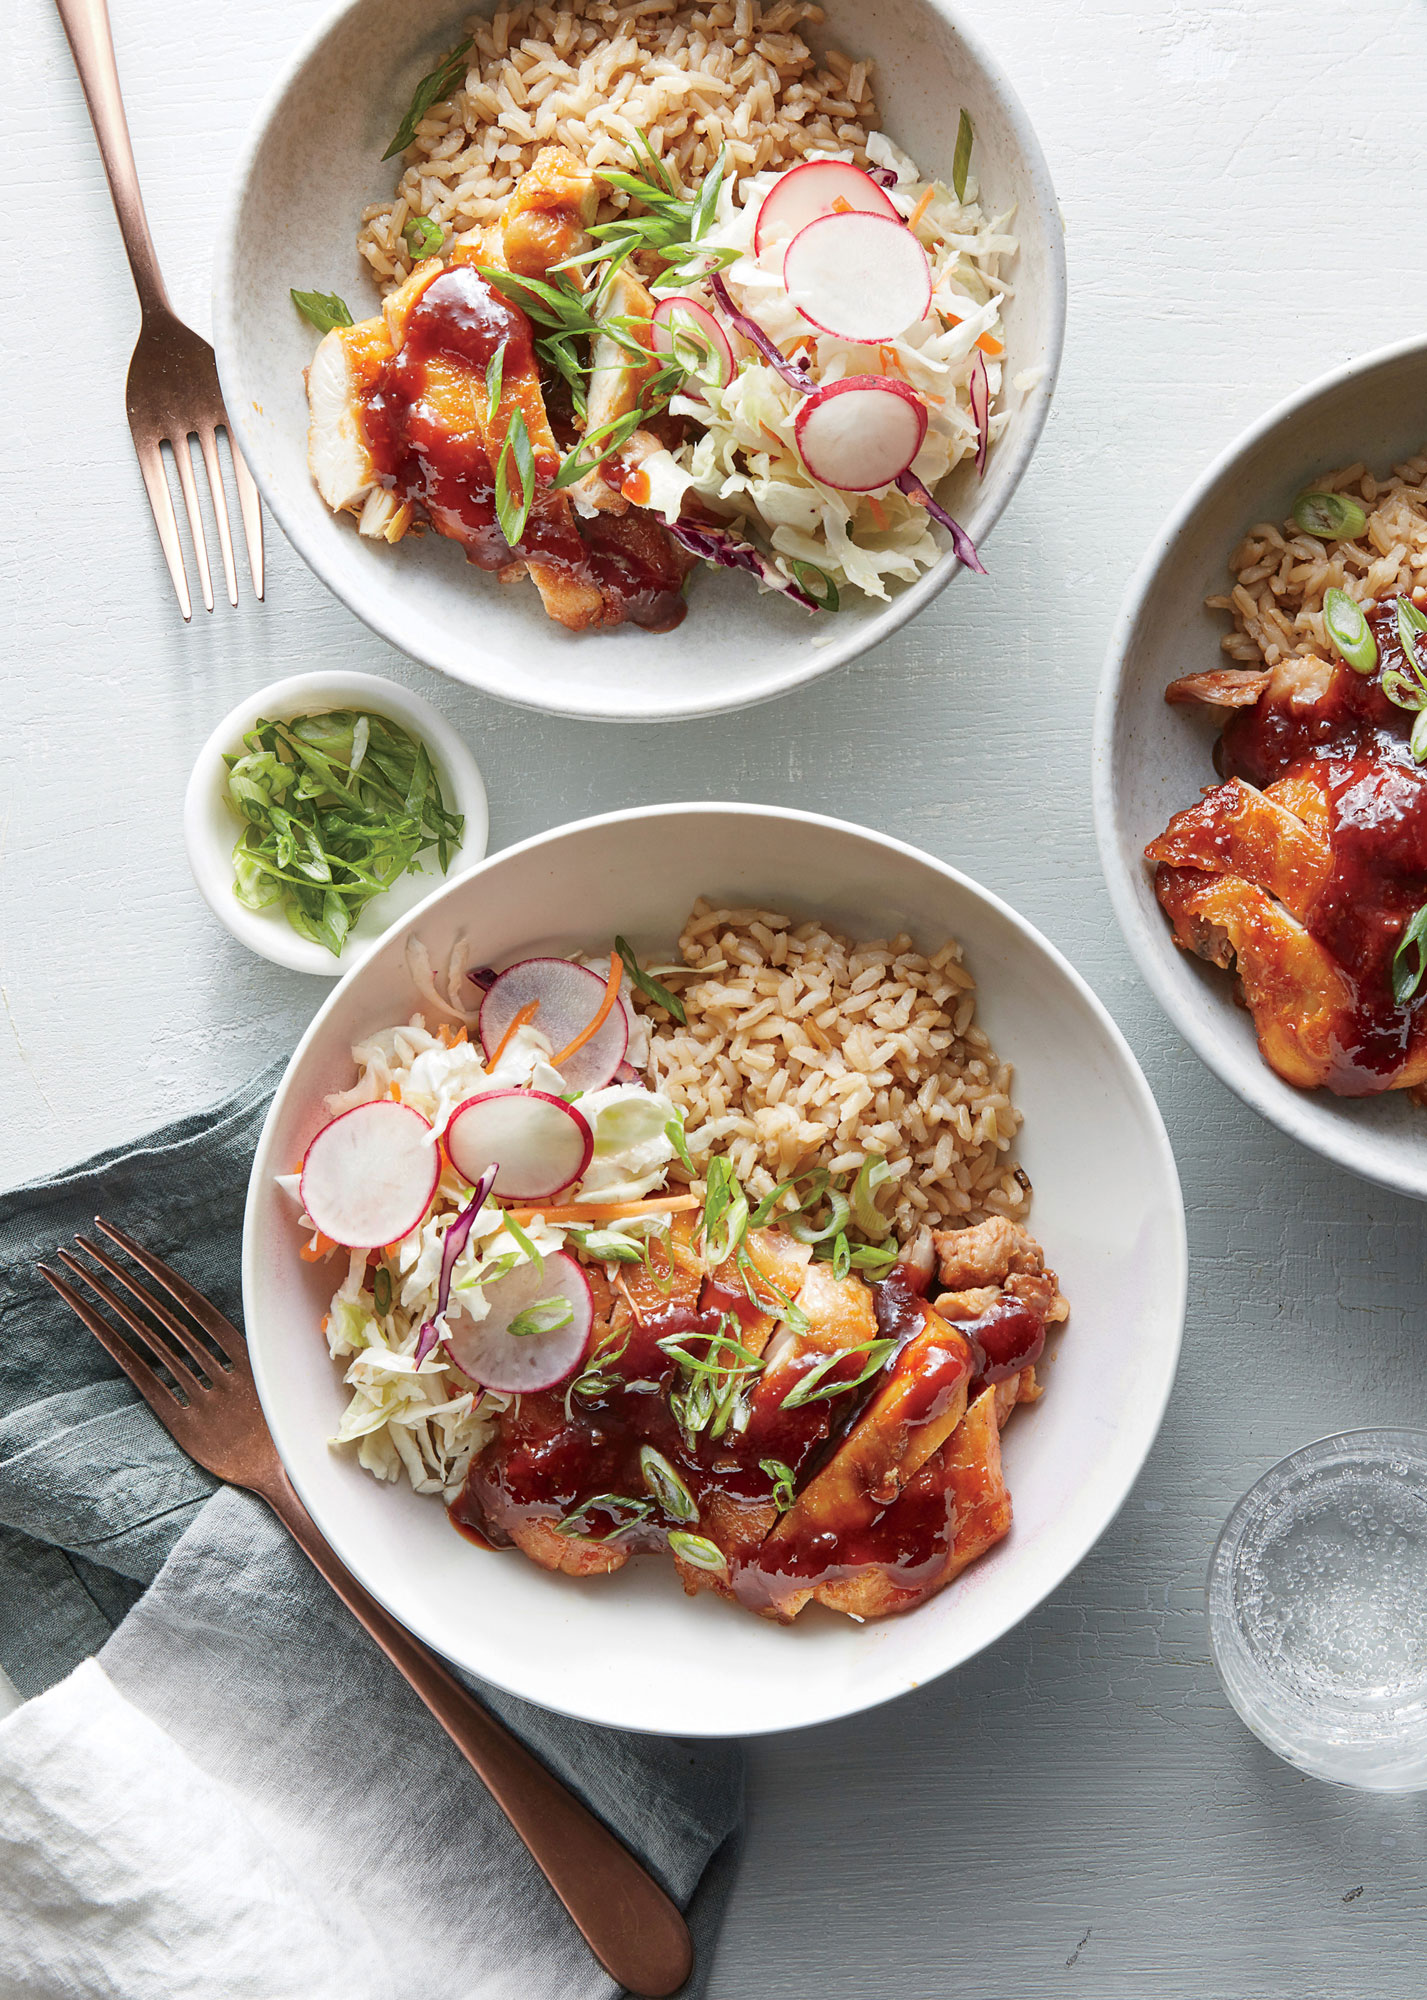 ck-Sweet-and-Sour Chicken Bowl Image